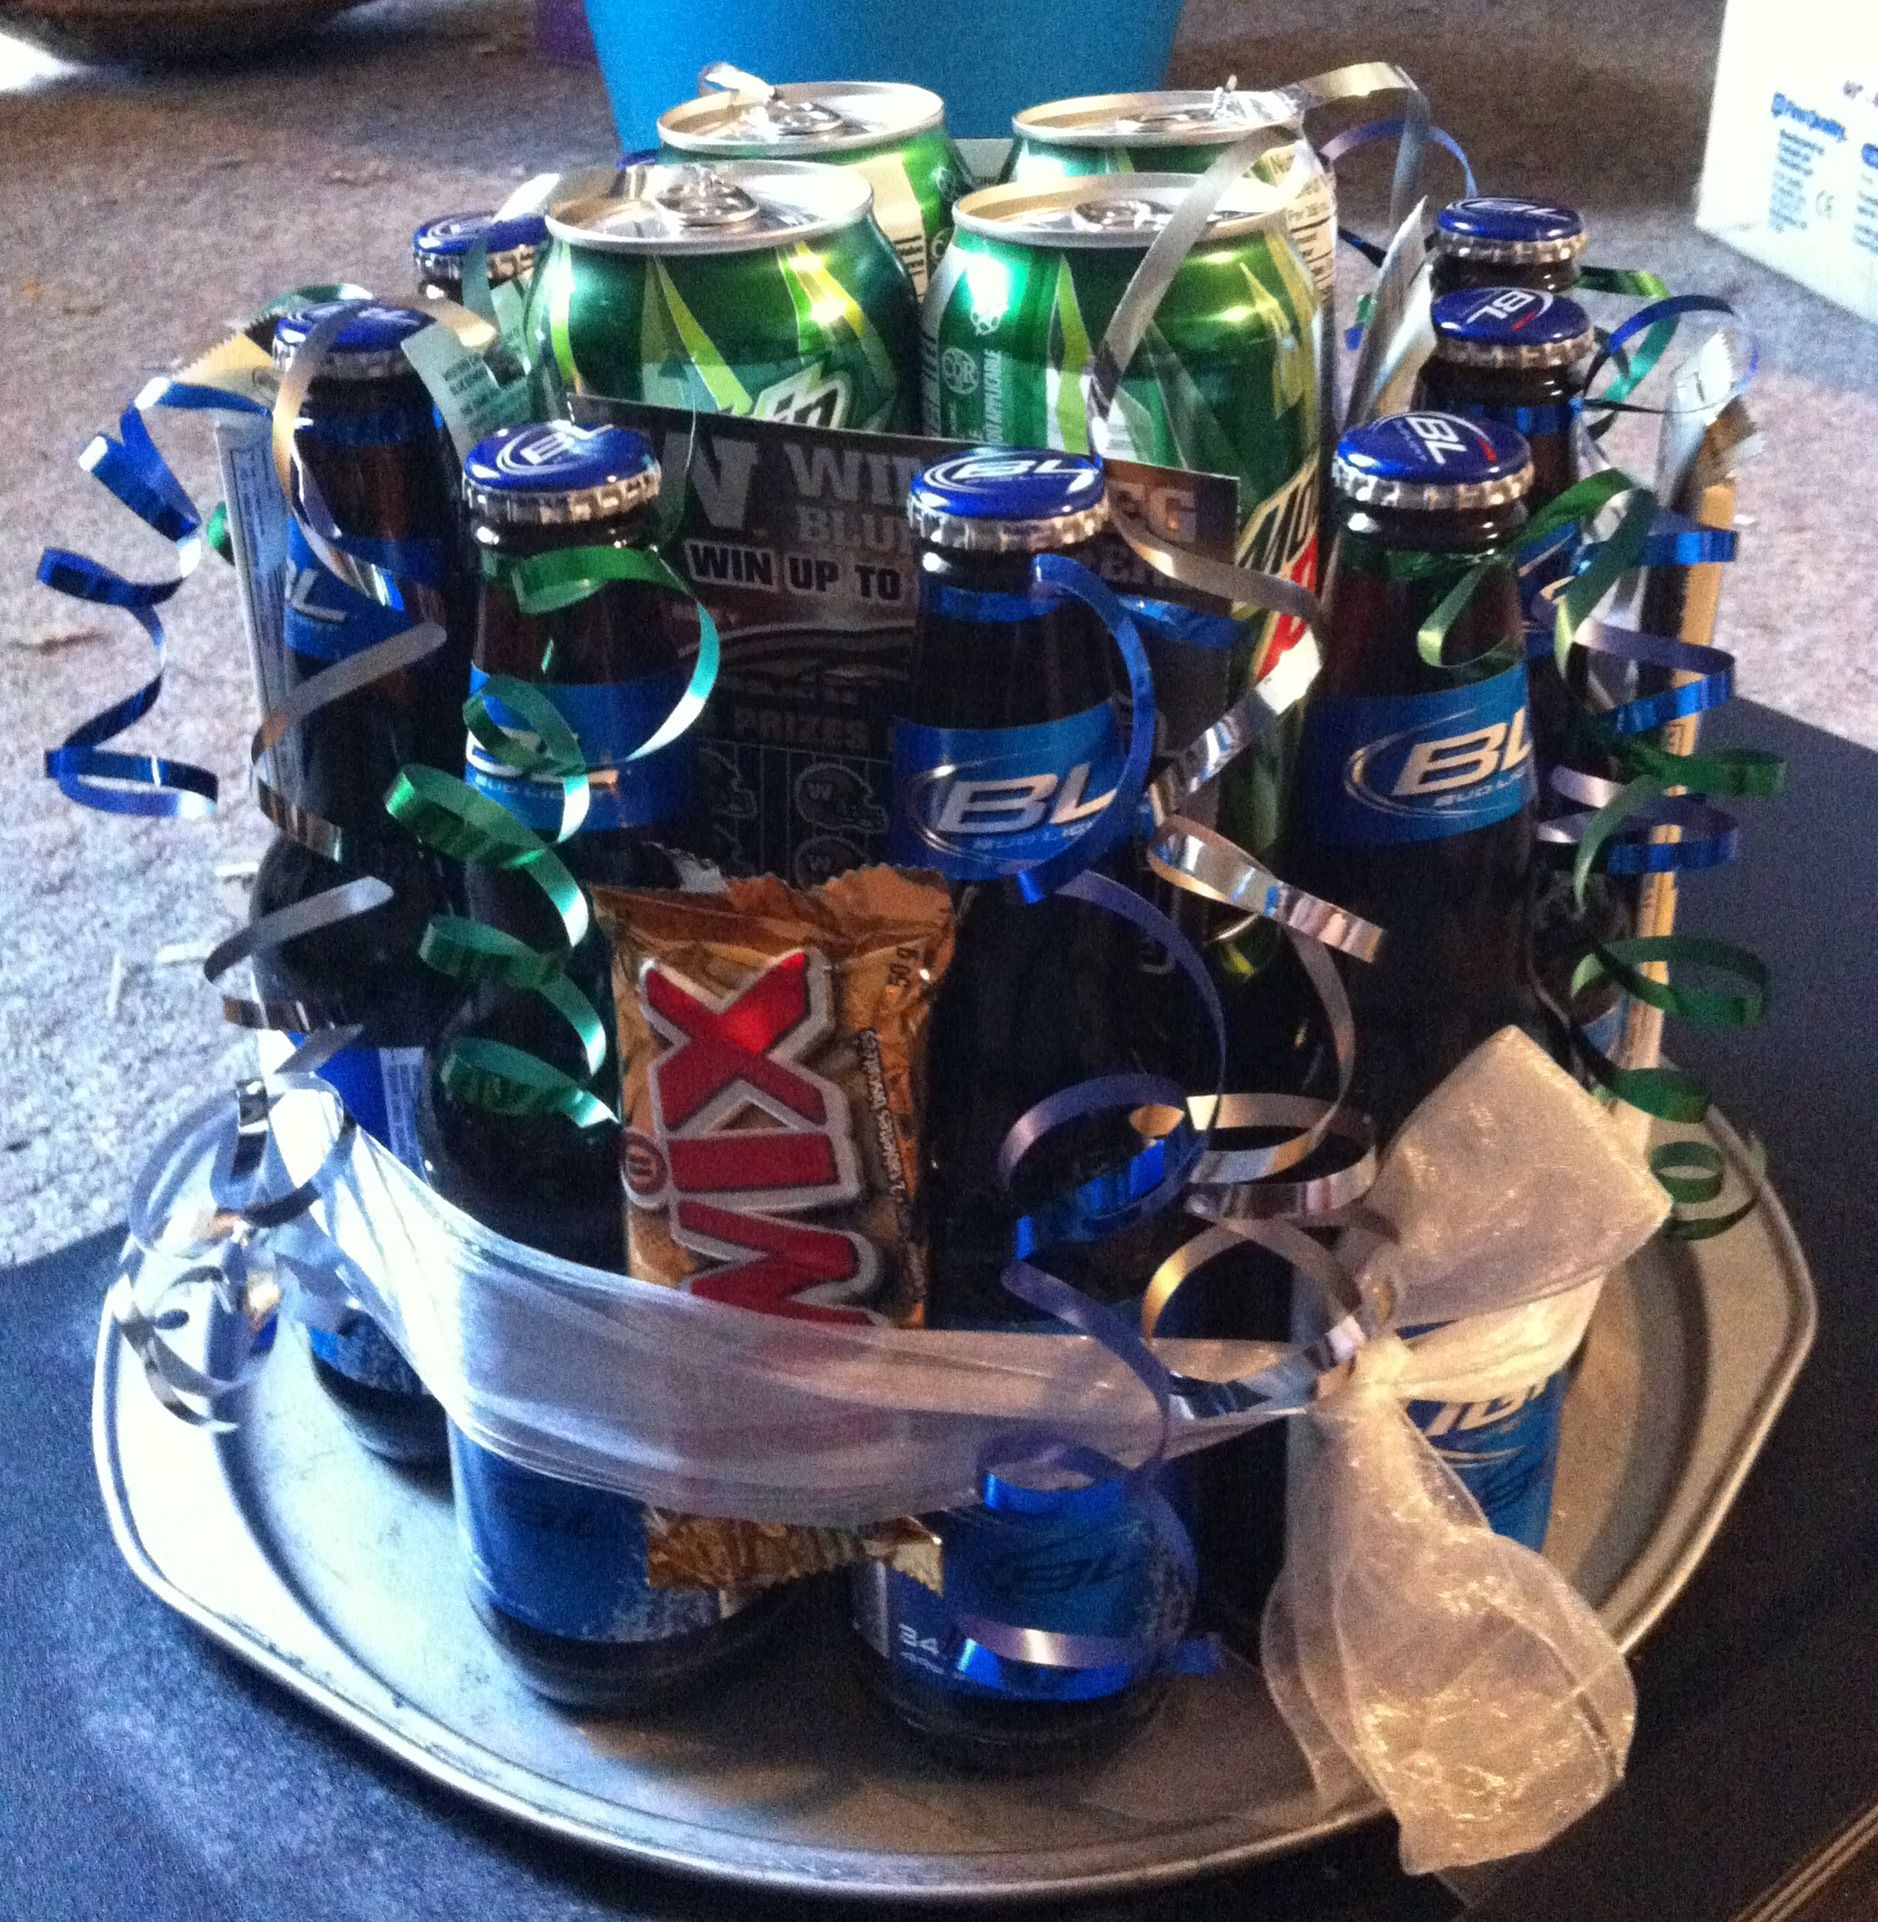 Awesome gift for a boyfriendhusbanddad Made this Bud Light